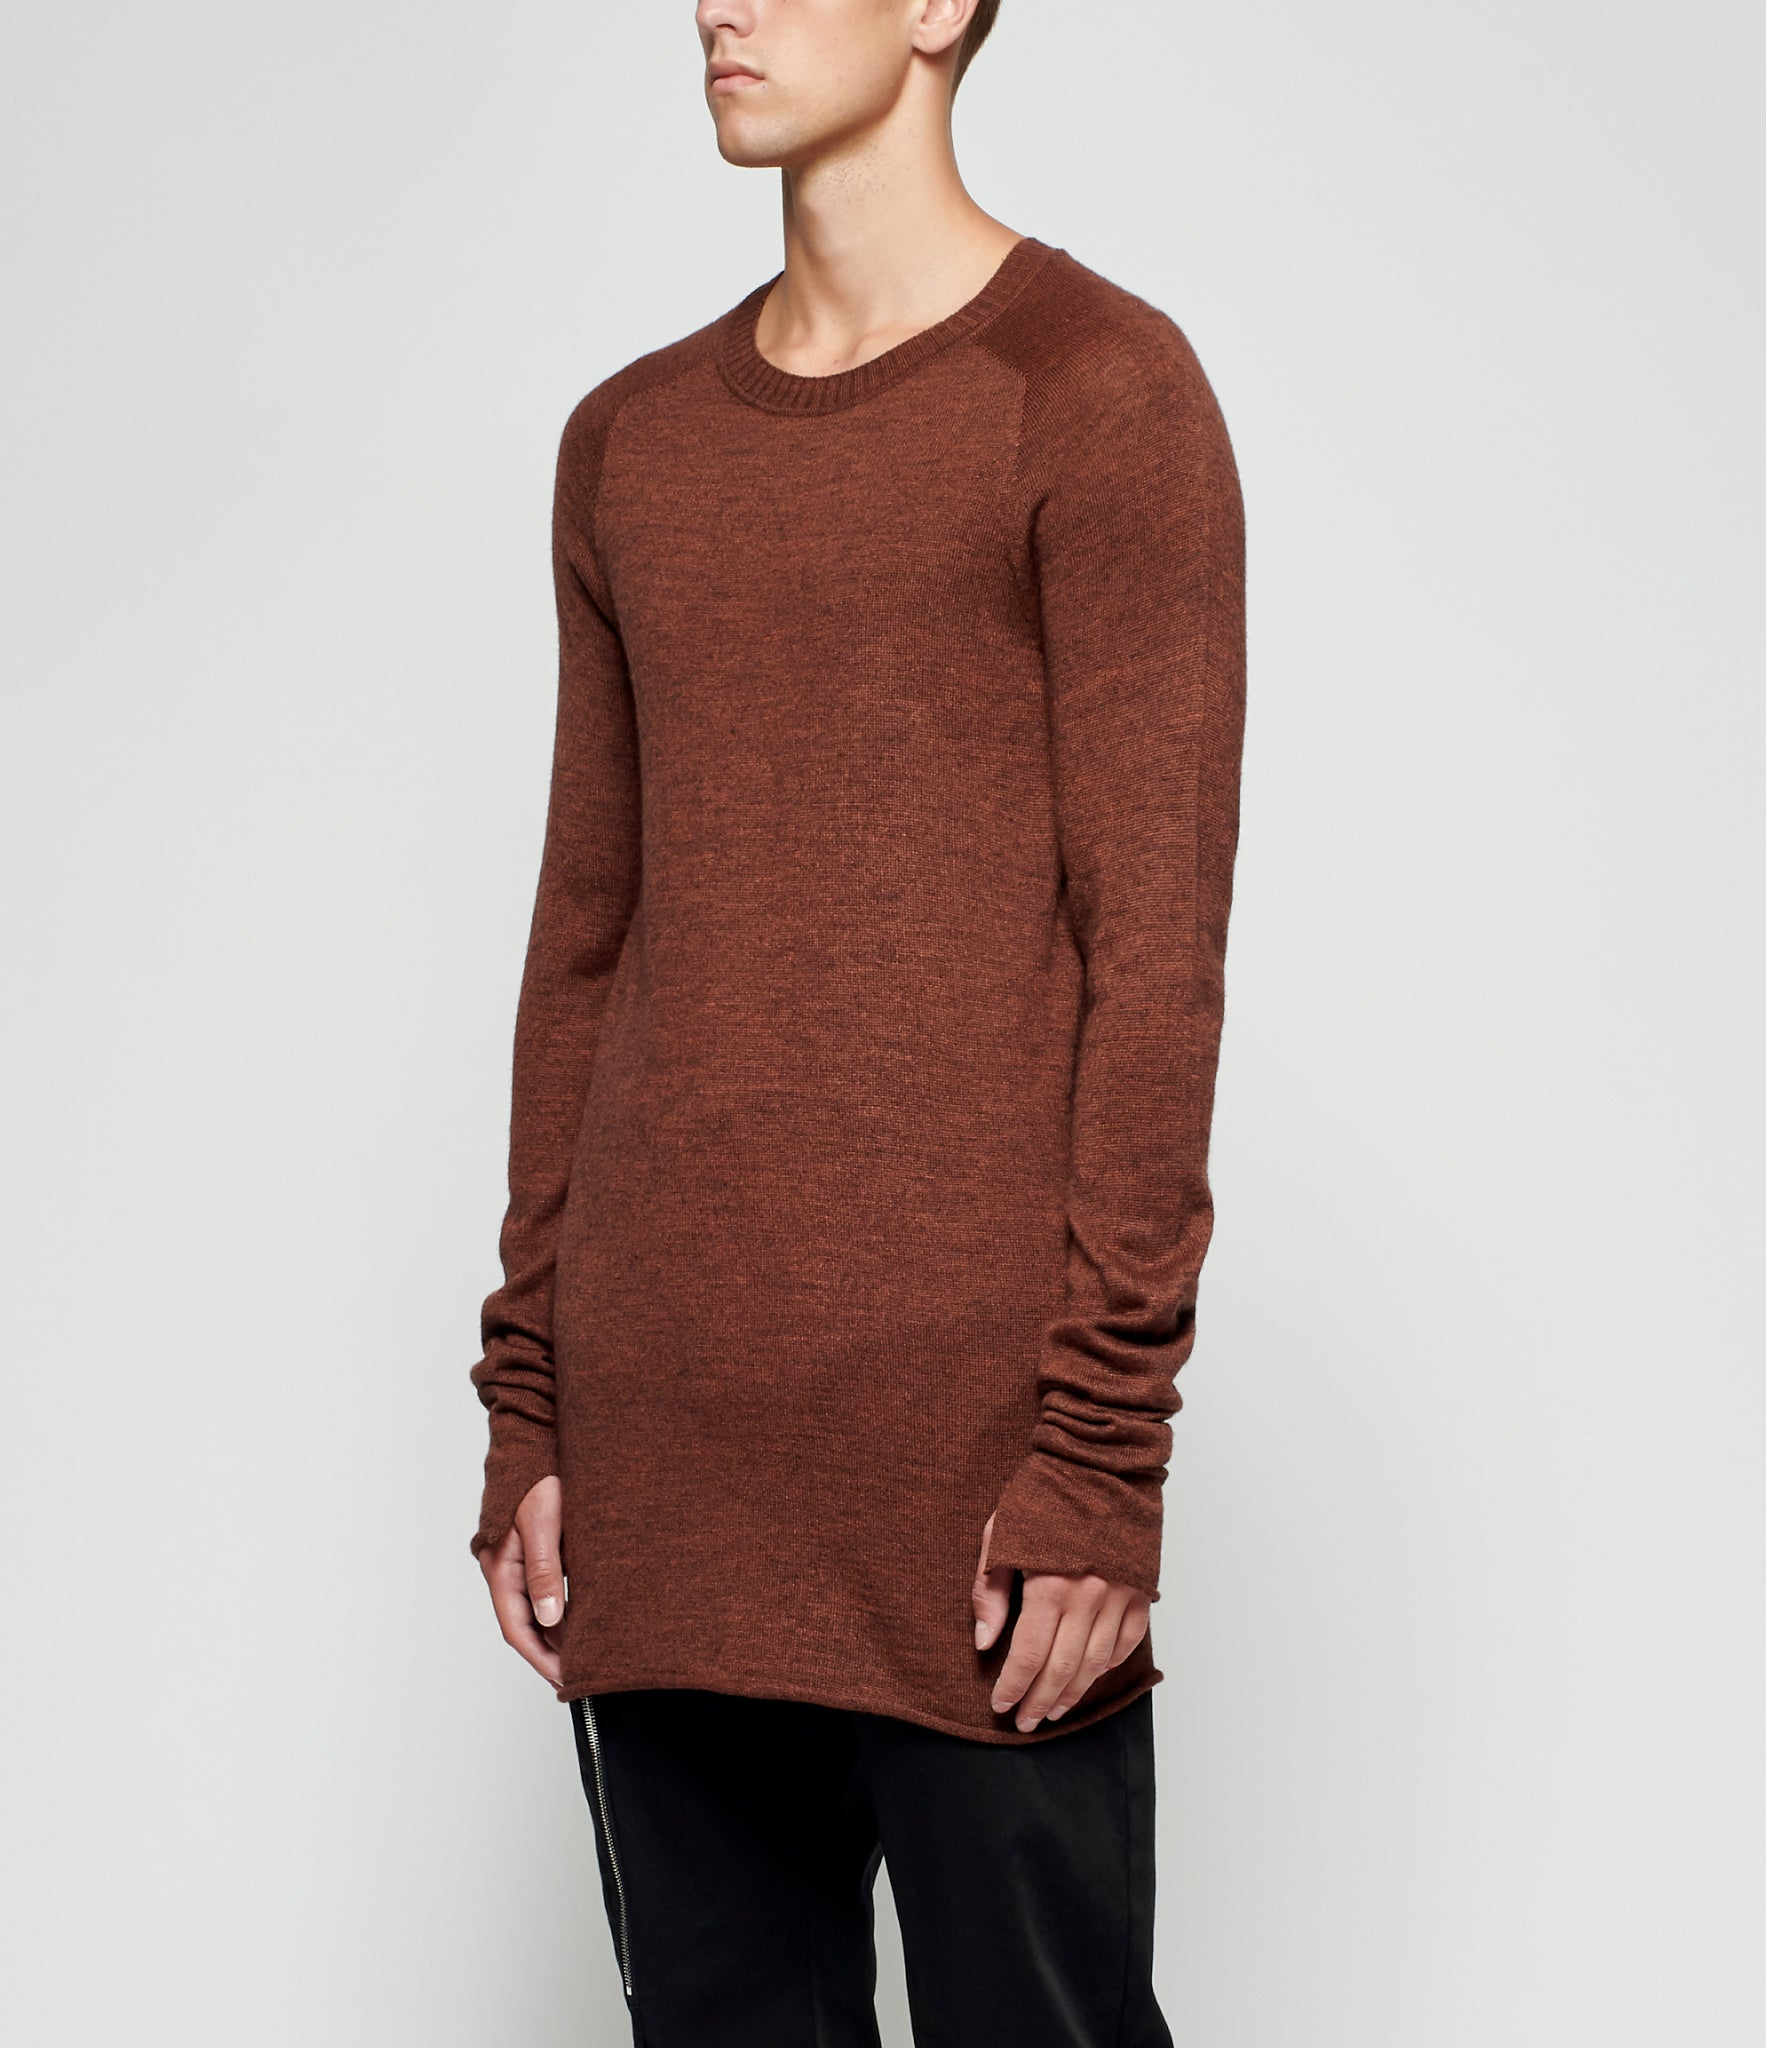 Lost & Found Rooms Merino Wool Blend Sweater